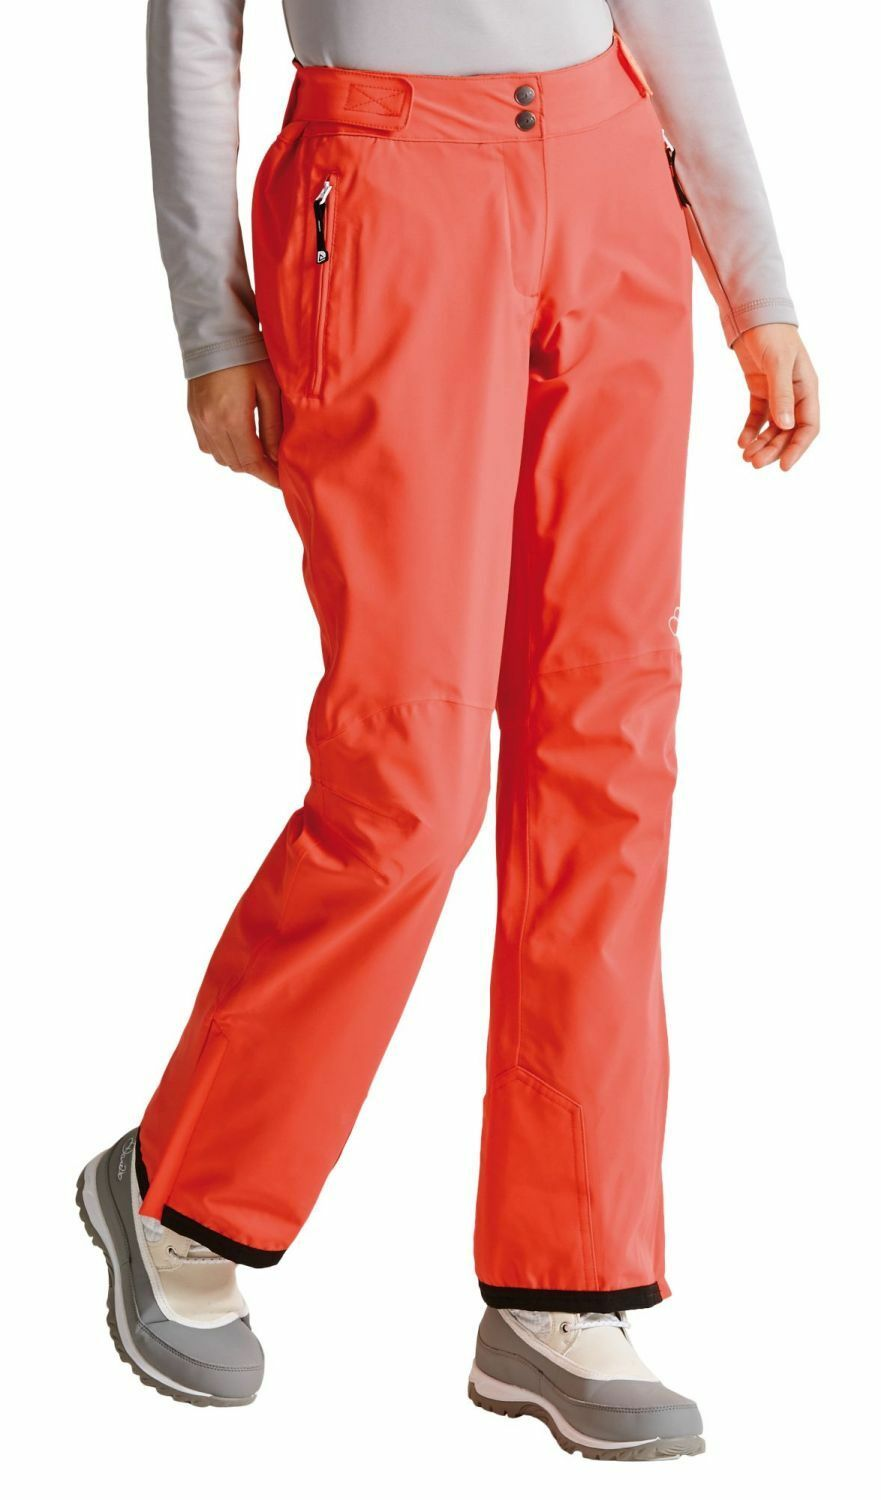 Dare 2b women pants ski soil for II Fiery  Coral  to provide you with a pleasant online shopping